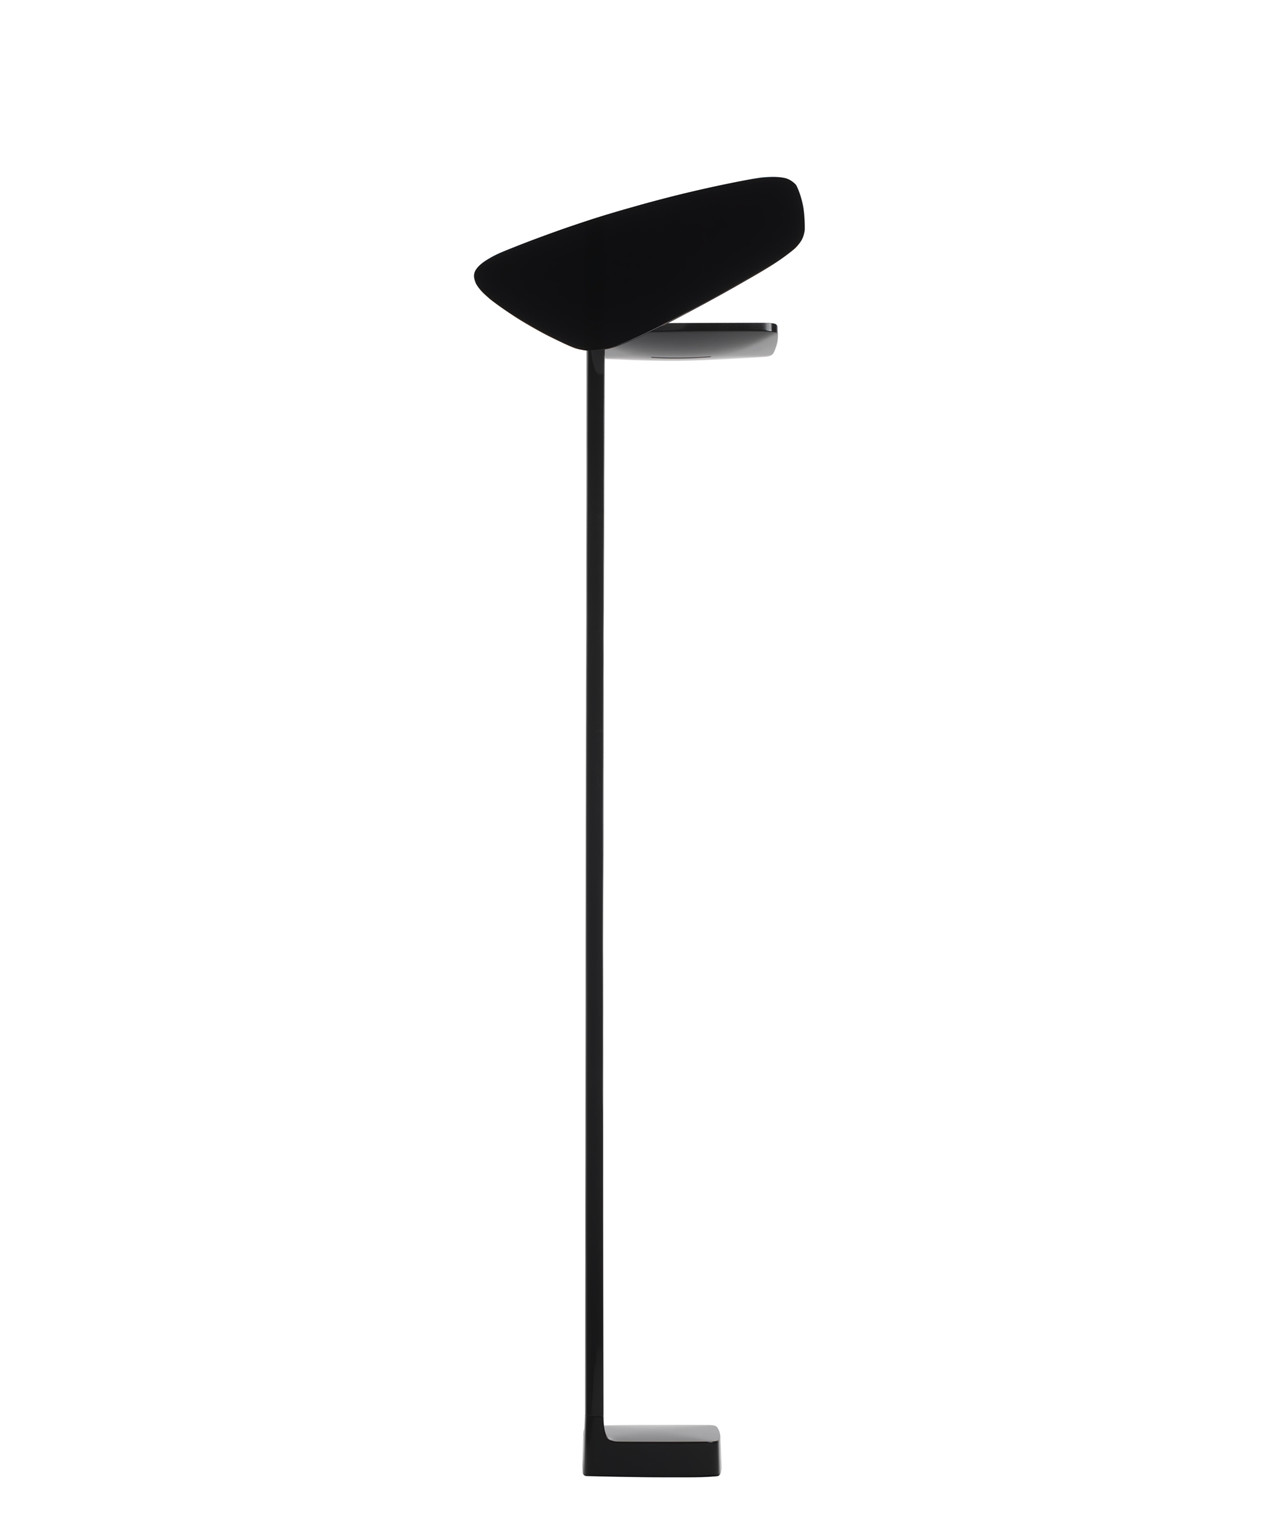 Lightwing Gulvlampe Sort - Foscarini